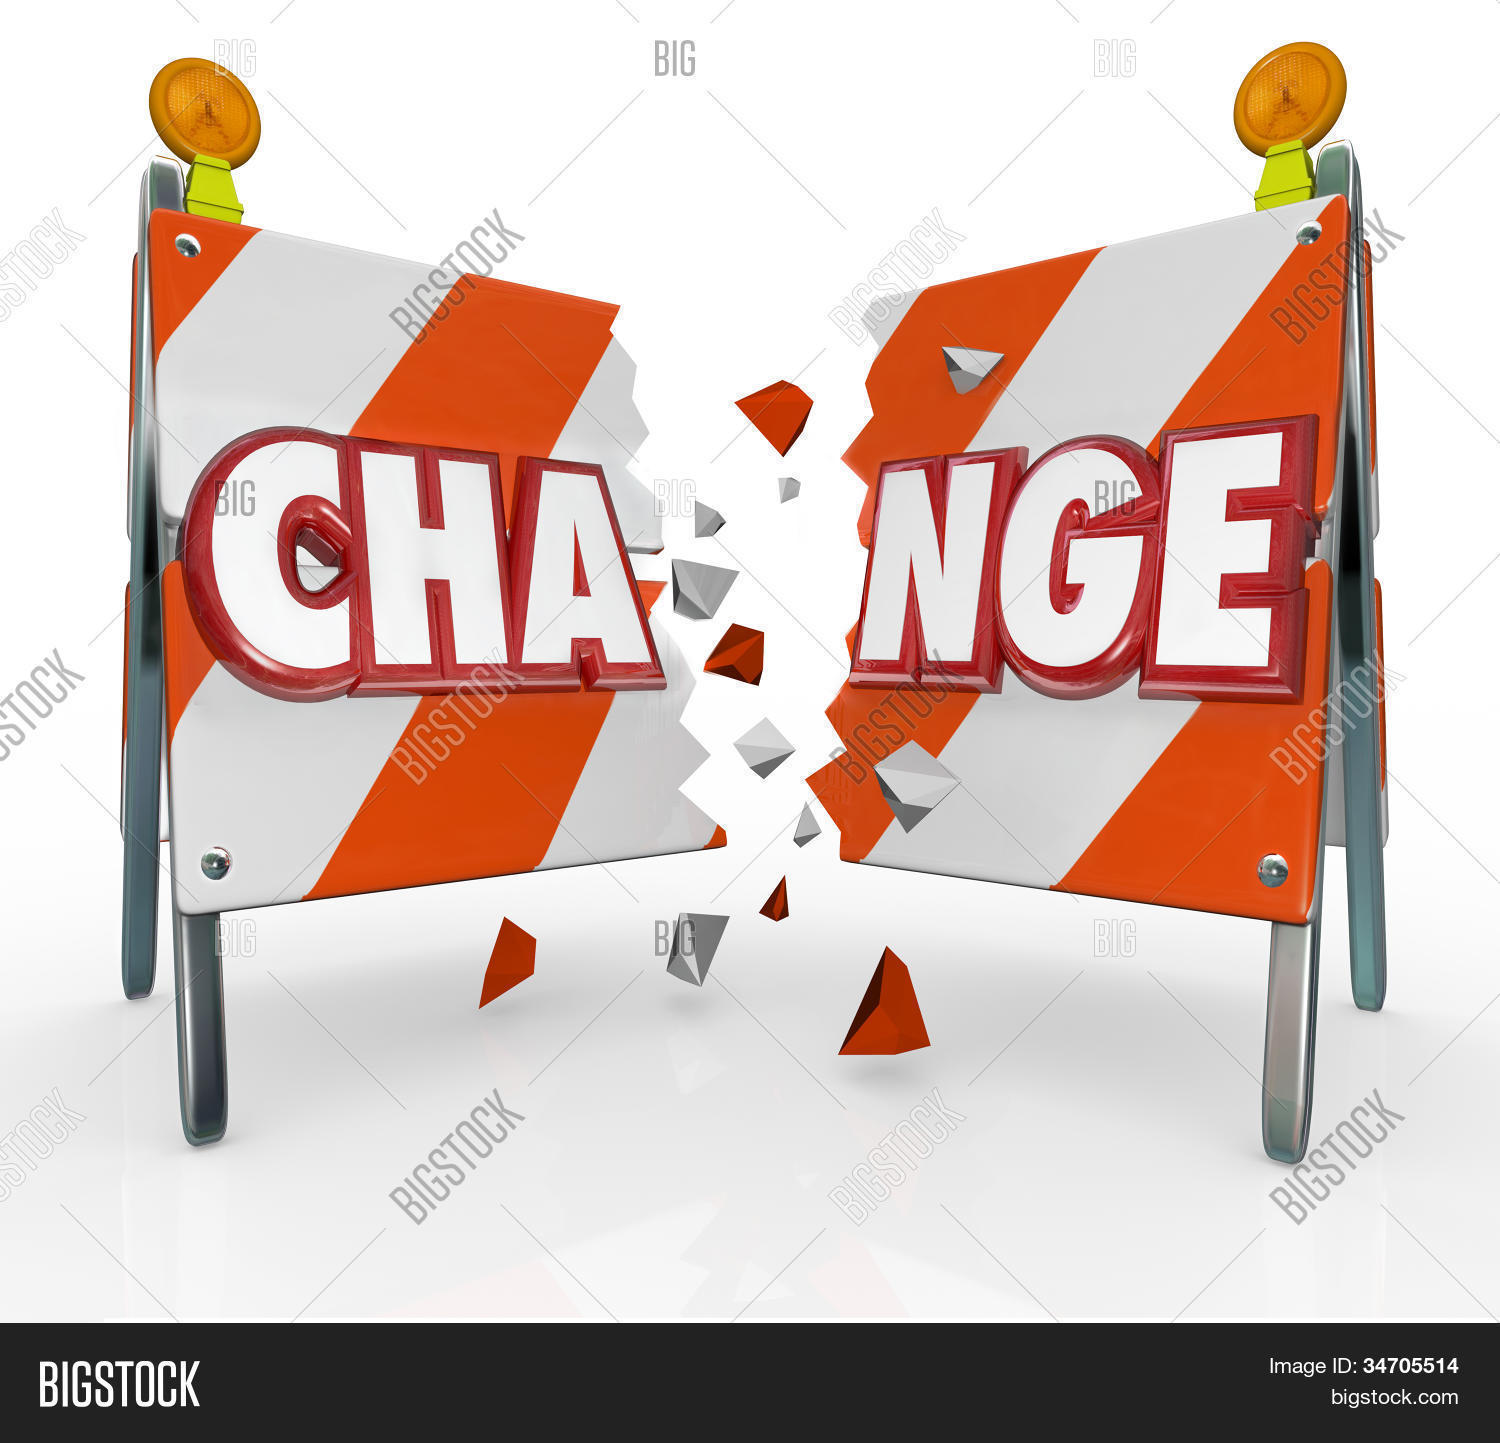 The word Change on a barrier being broken through to allow for.